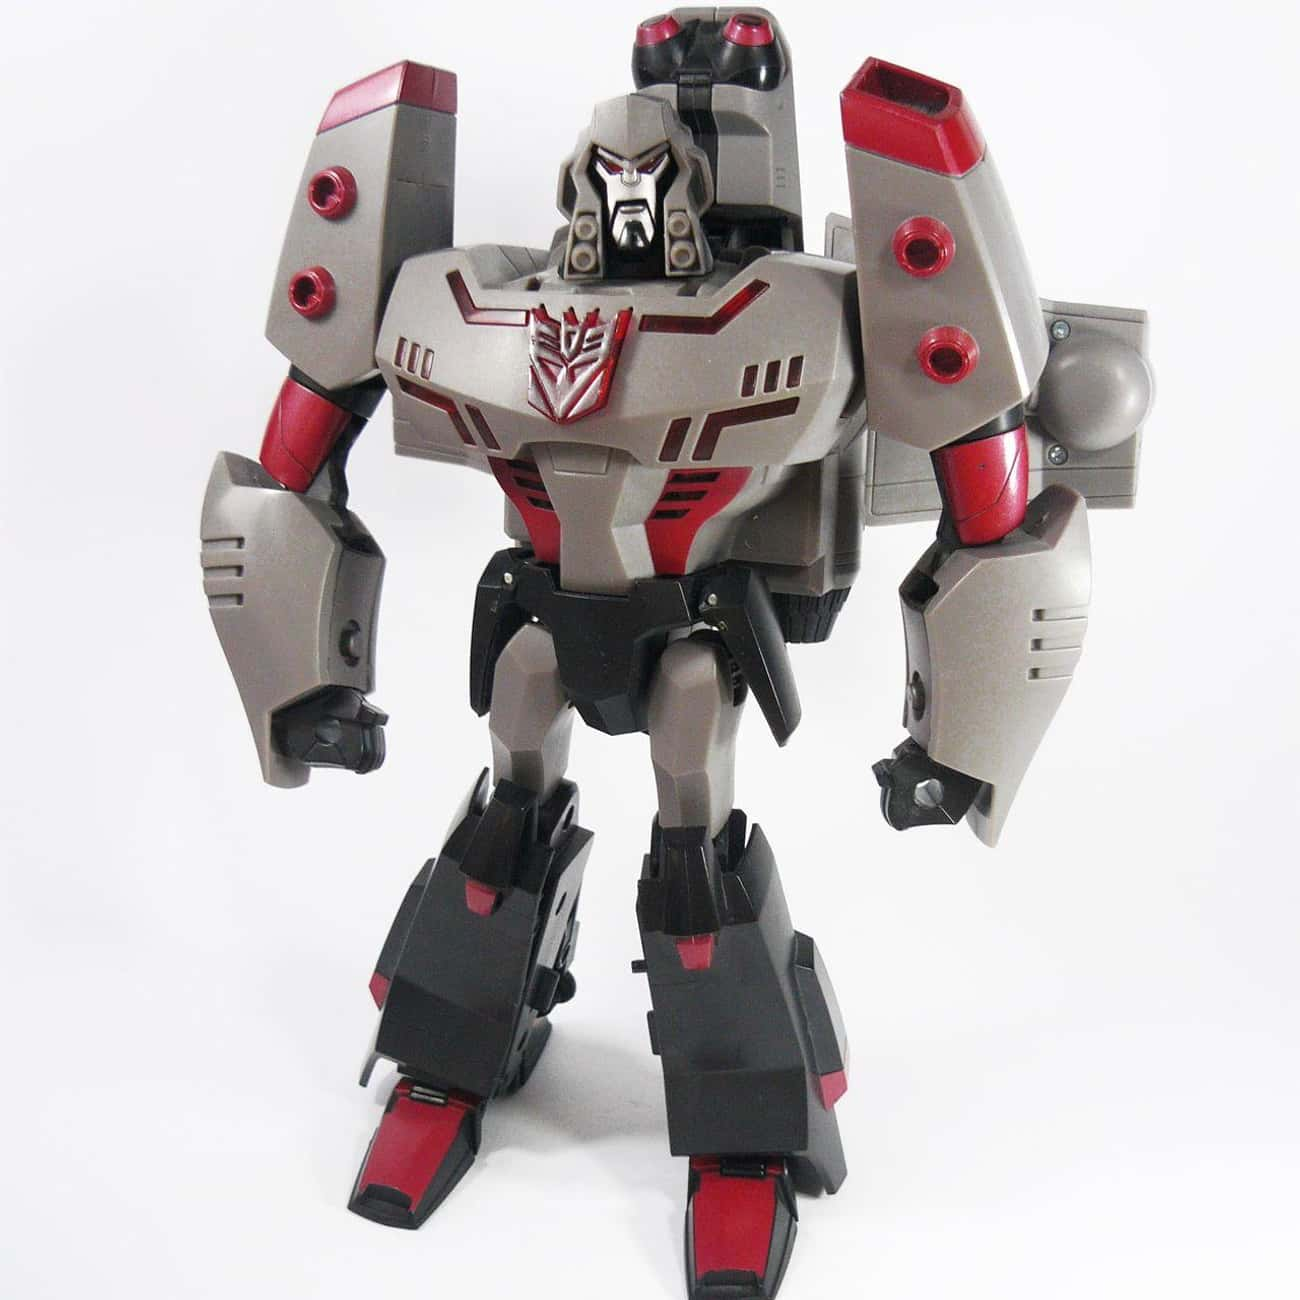 Animated Megatron is listed (or ranked) 4 on the list The 20 Best Megatron Toys Ever Made, Ranked